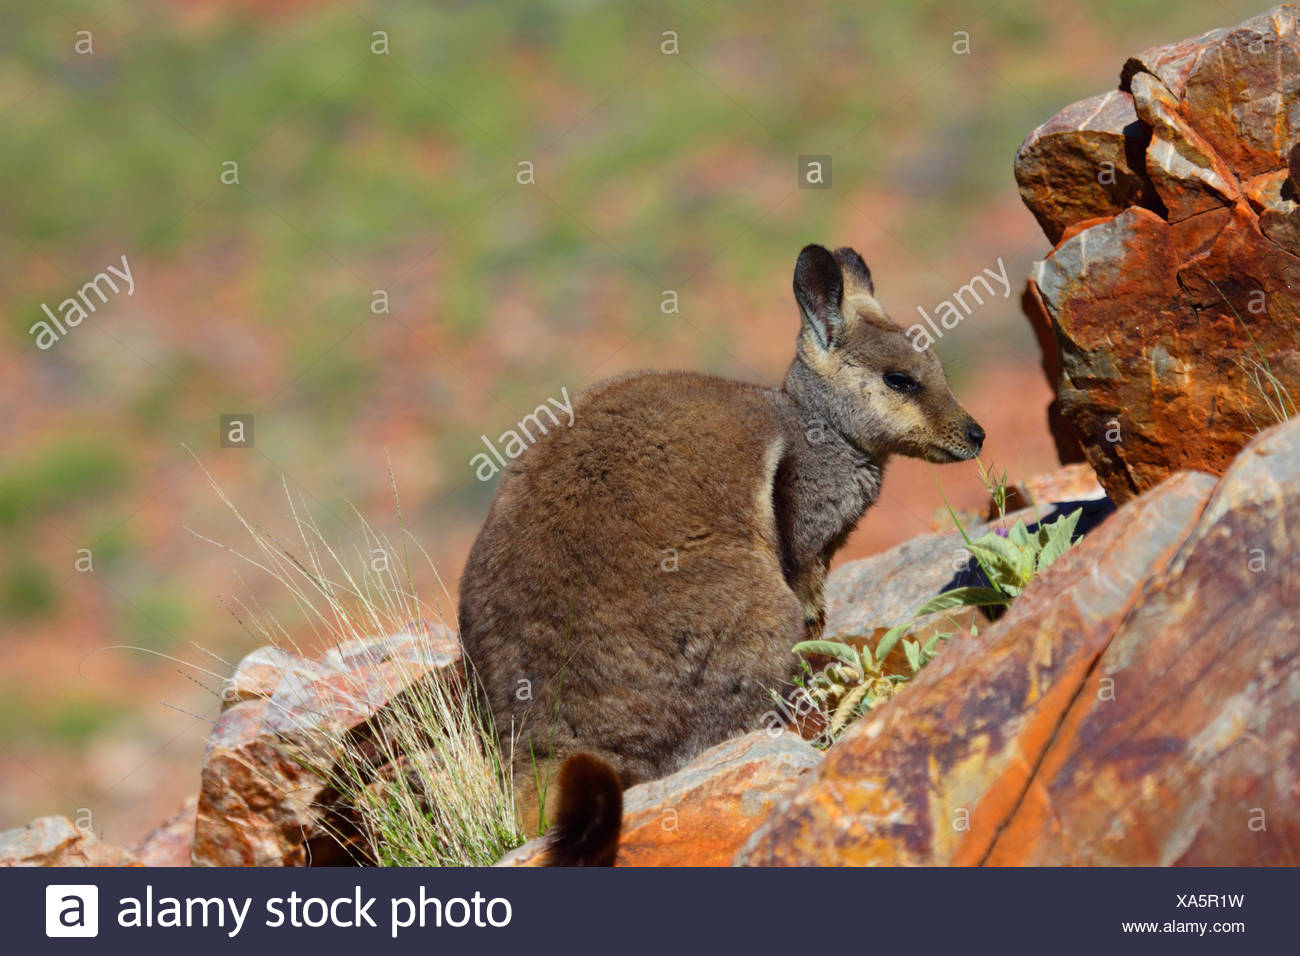 Black-footed rock wallaby (Petrogale lateralis), sitting on rocks, Australia, Northern Territory, Western MacDonnell Ranges, Ormiston Gorge - Stock Image